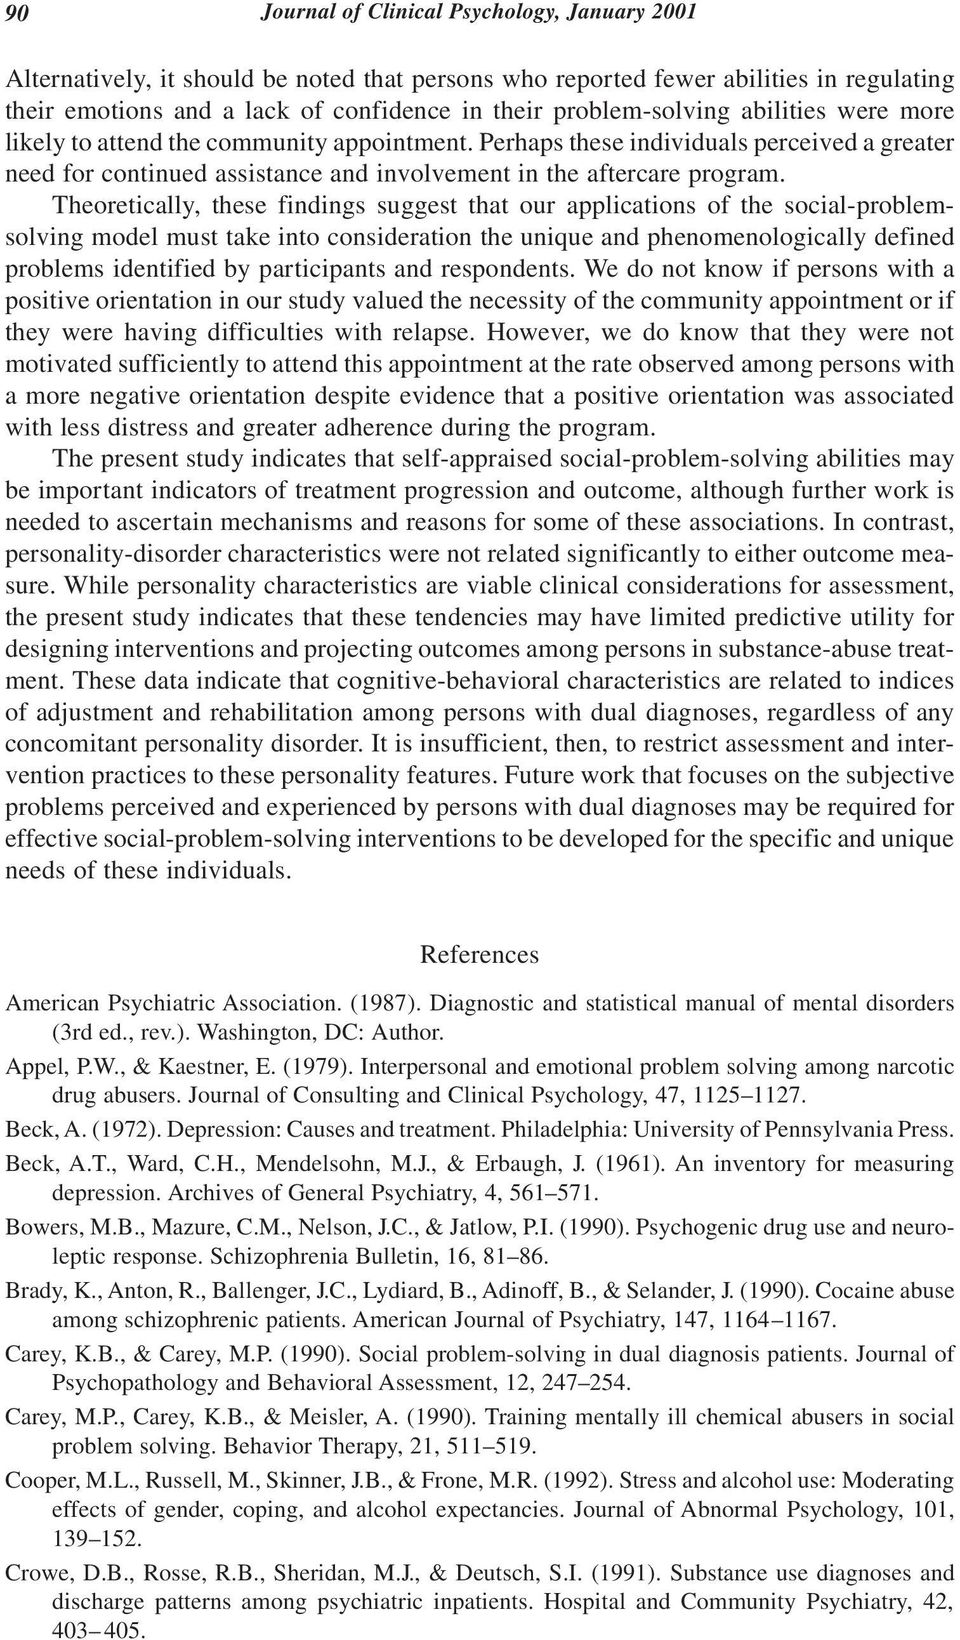 Theoretically, these findings suggest that our applications of the social-problemsolving model must take into consideration the unique and phenomenologically defined problems identified by